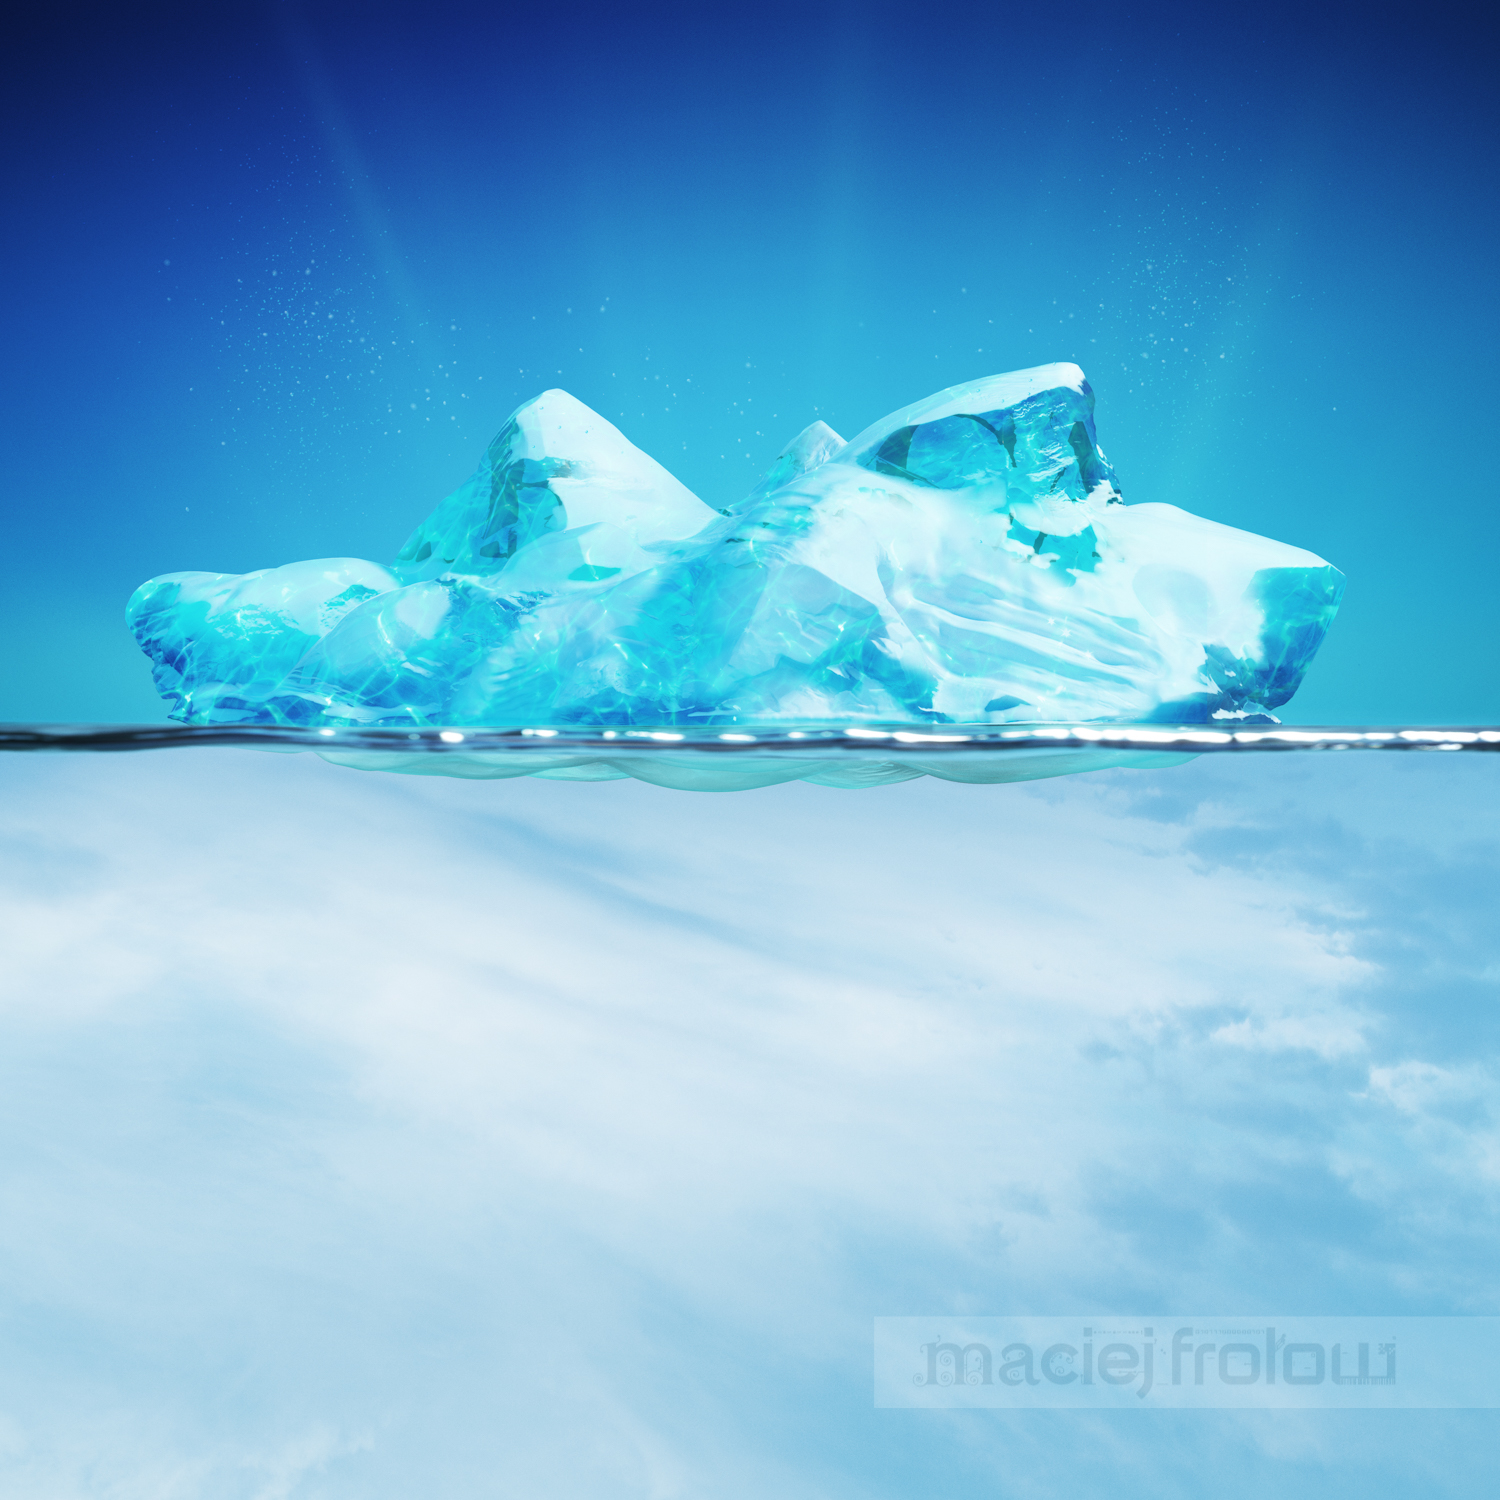 Illustration MaciejFrolow 3D iceberg